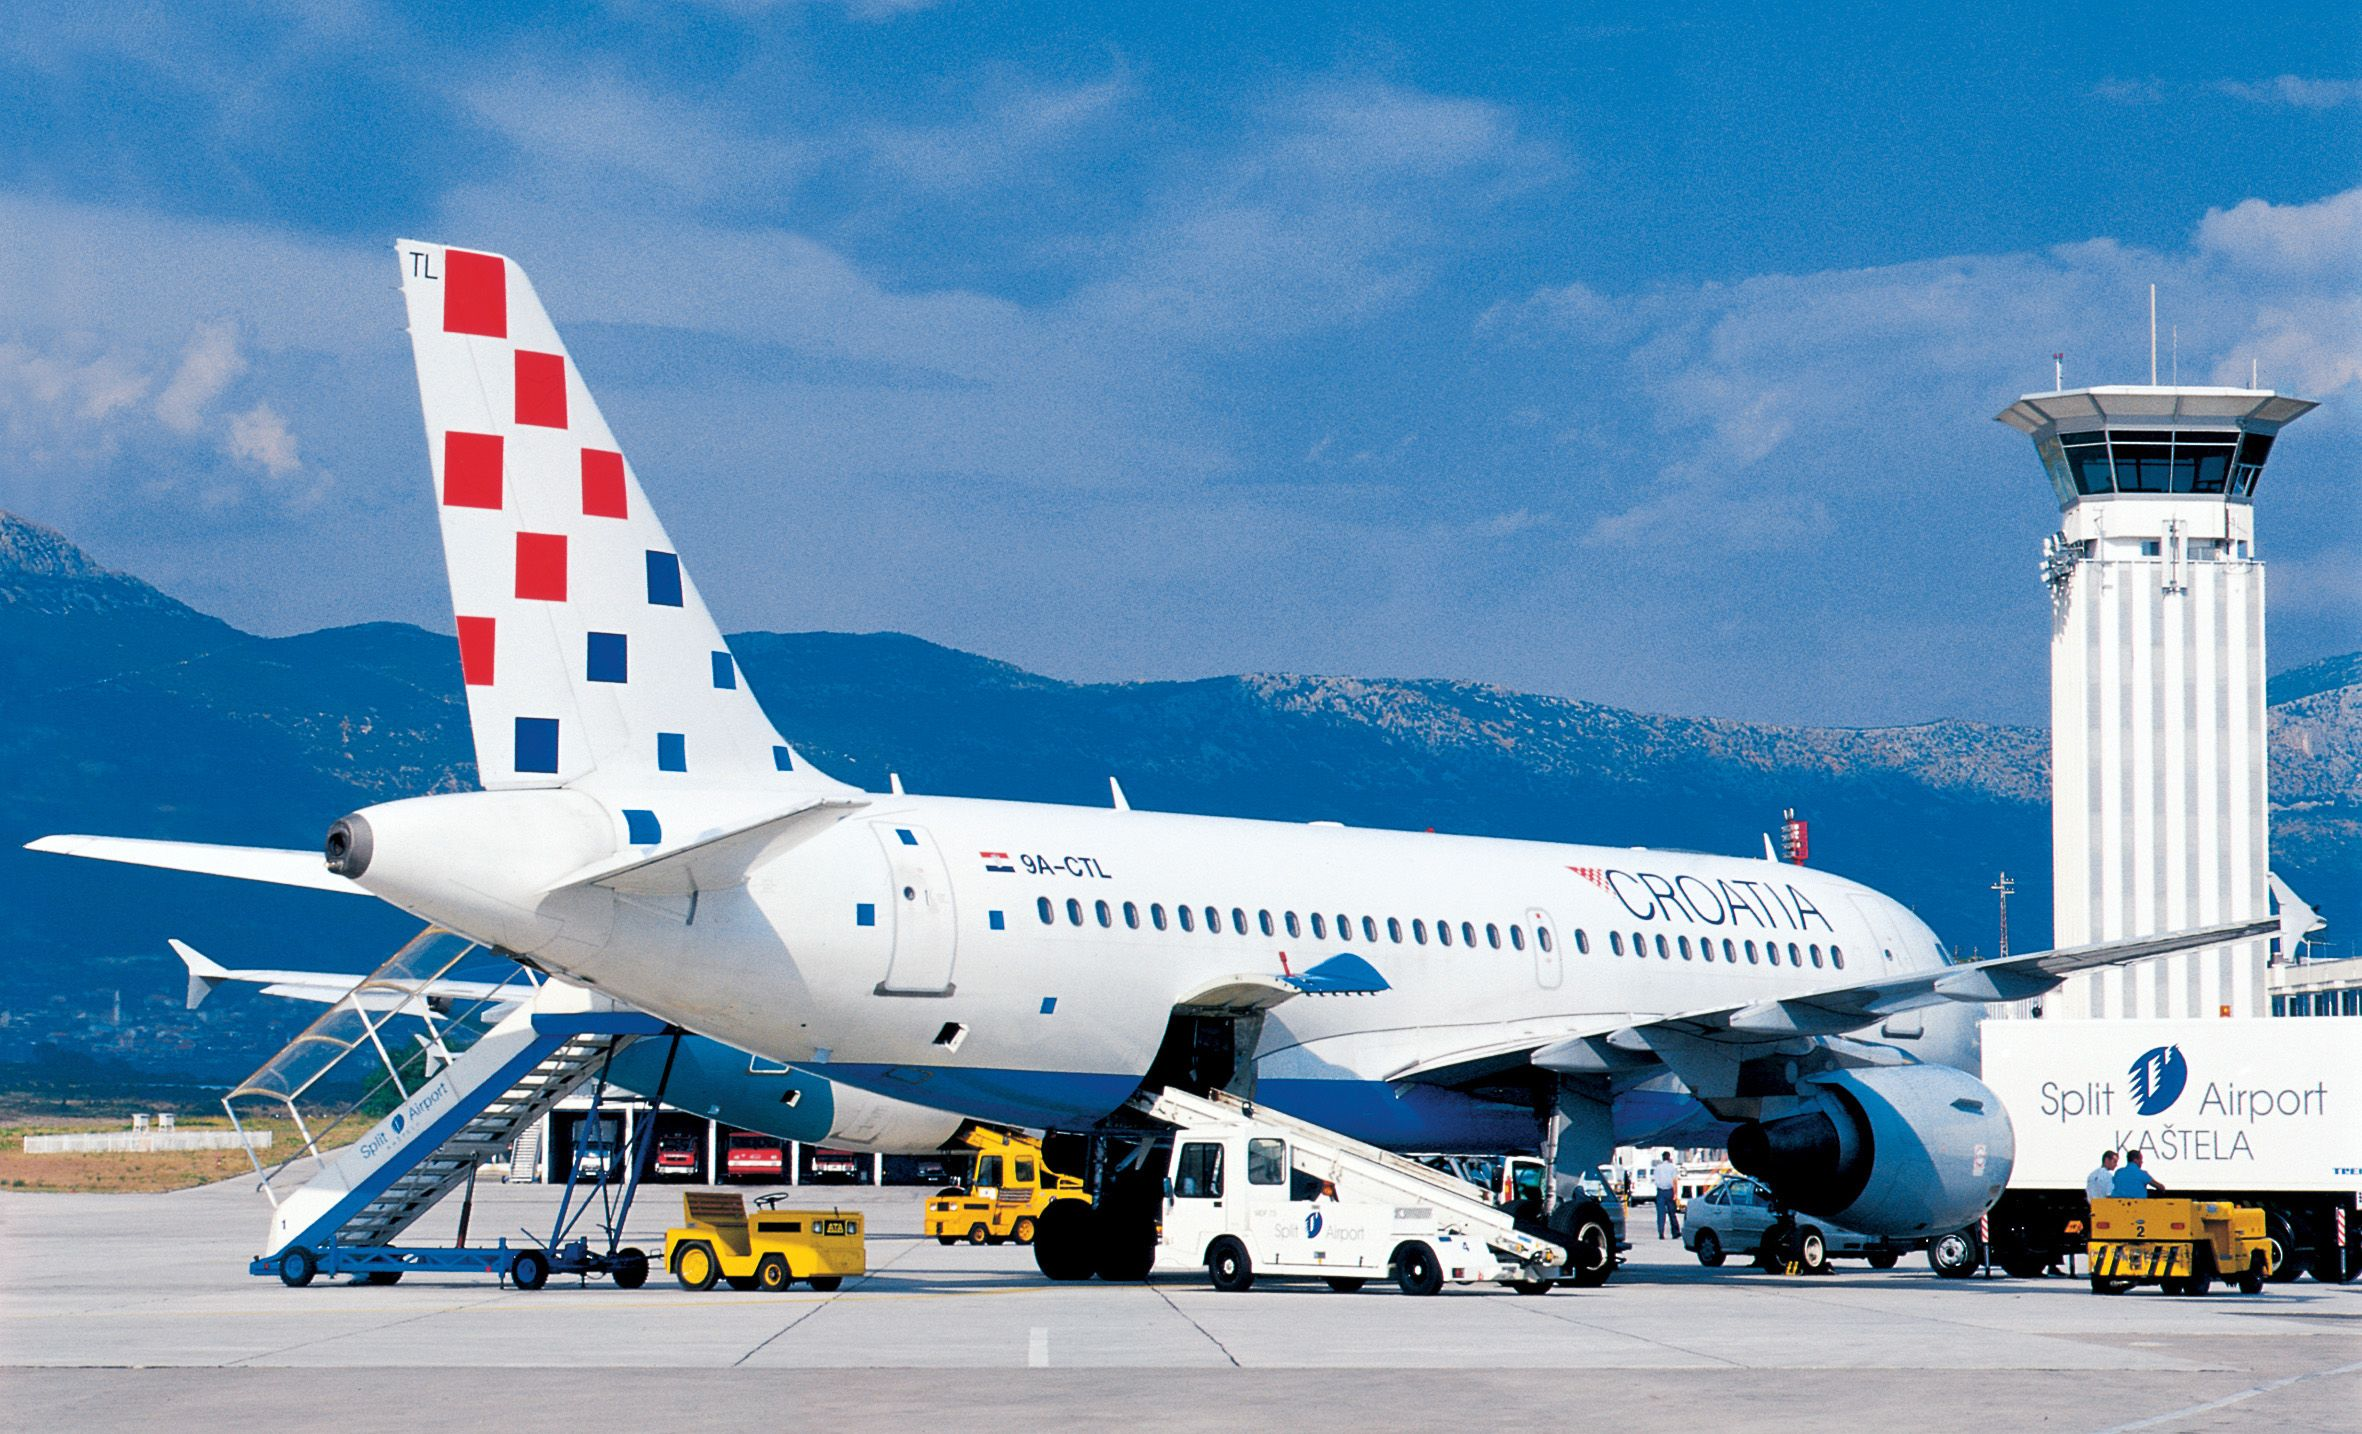 Split Airport Transfers Private Car And Mini Van Transfers From And To The Airport Of Split Croatia Croatia Airlines Self Organization